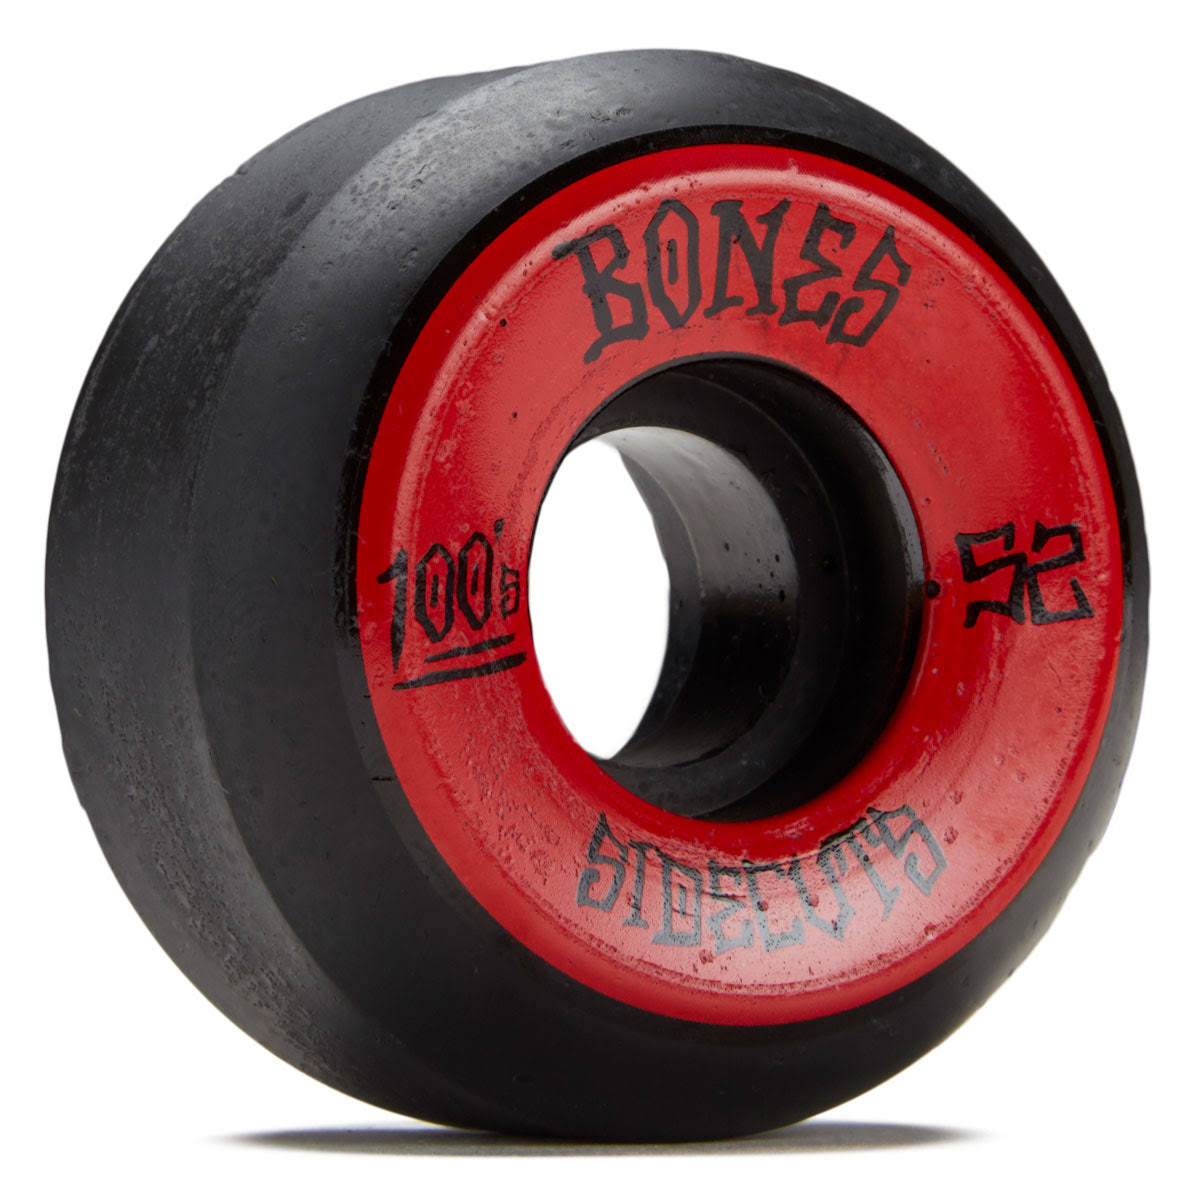 Bones OG 100s V5 Sidecut Skateboard Wheels - Black and Red, 52mm, 4pk